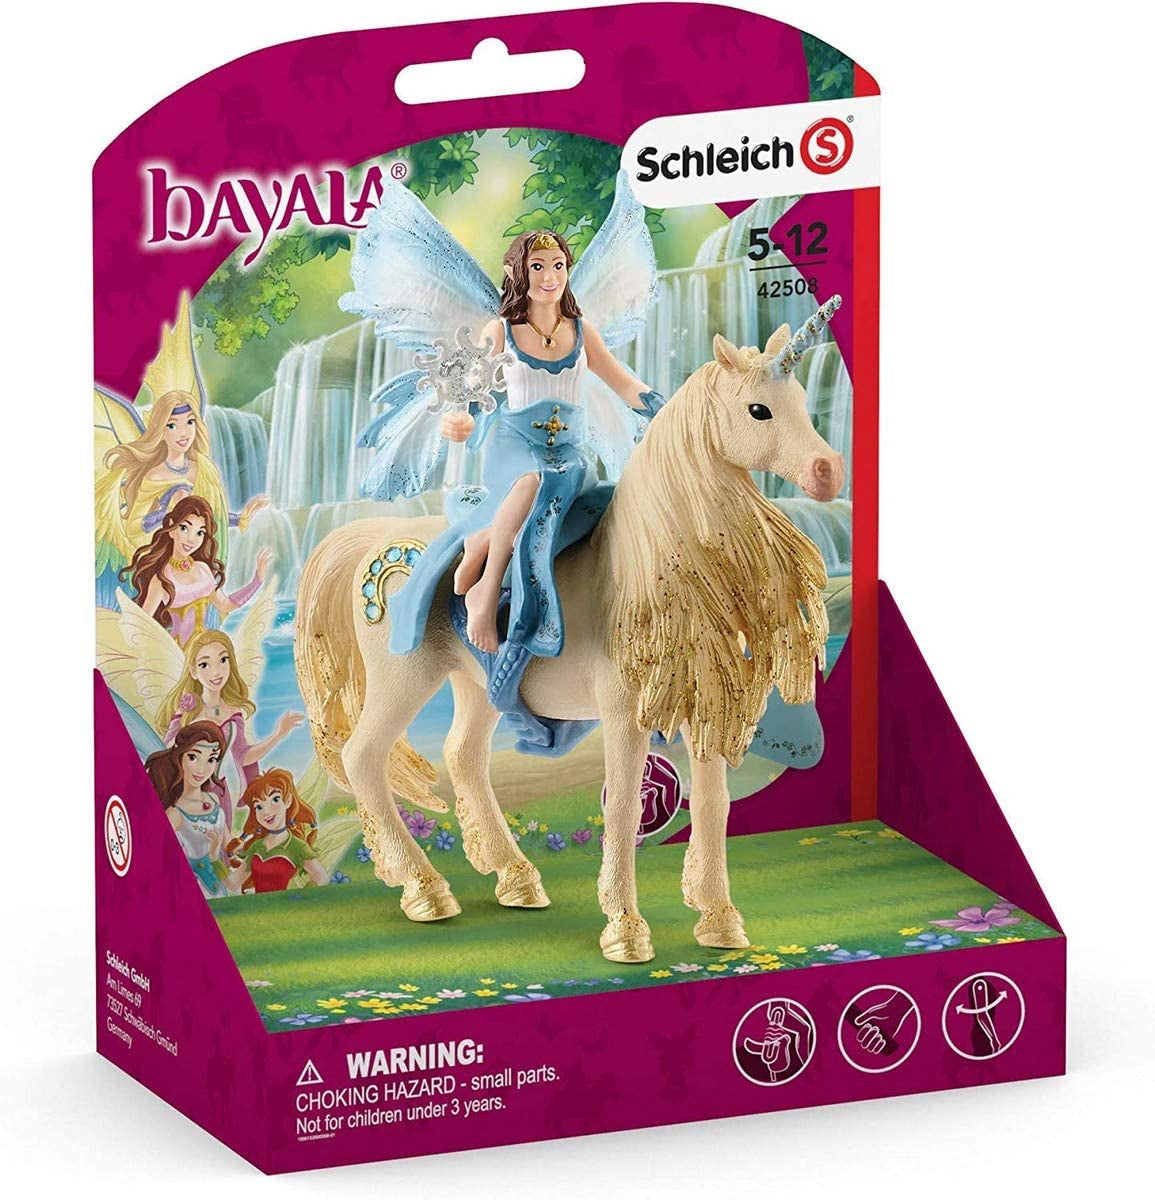 Schleich Bayala 42508 Eyela Riding On Golden Unicorn Bayala